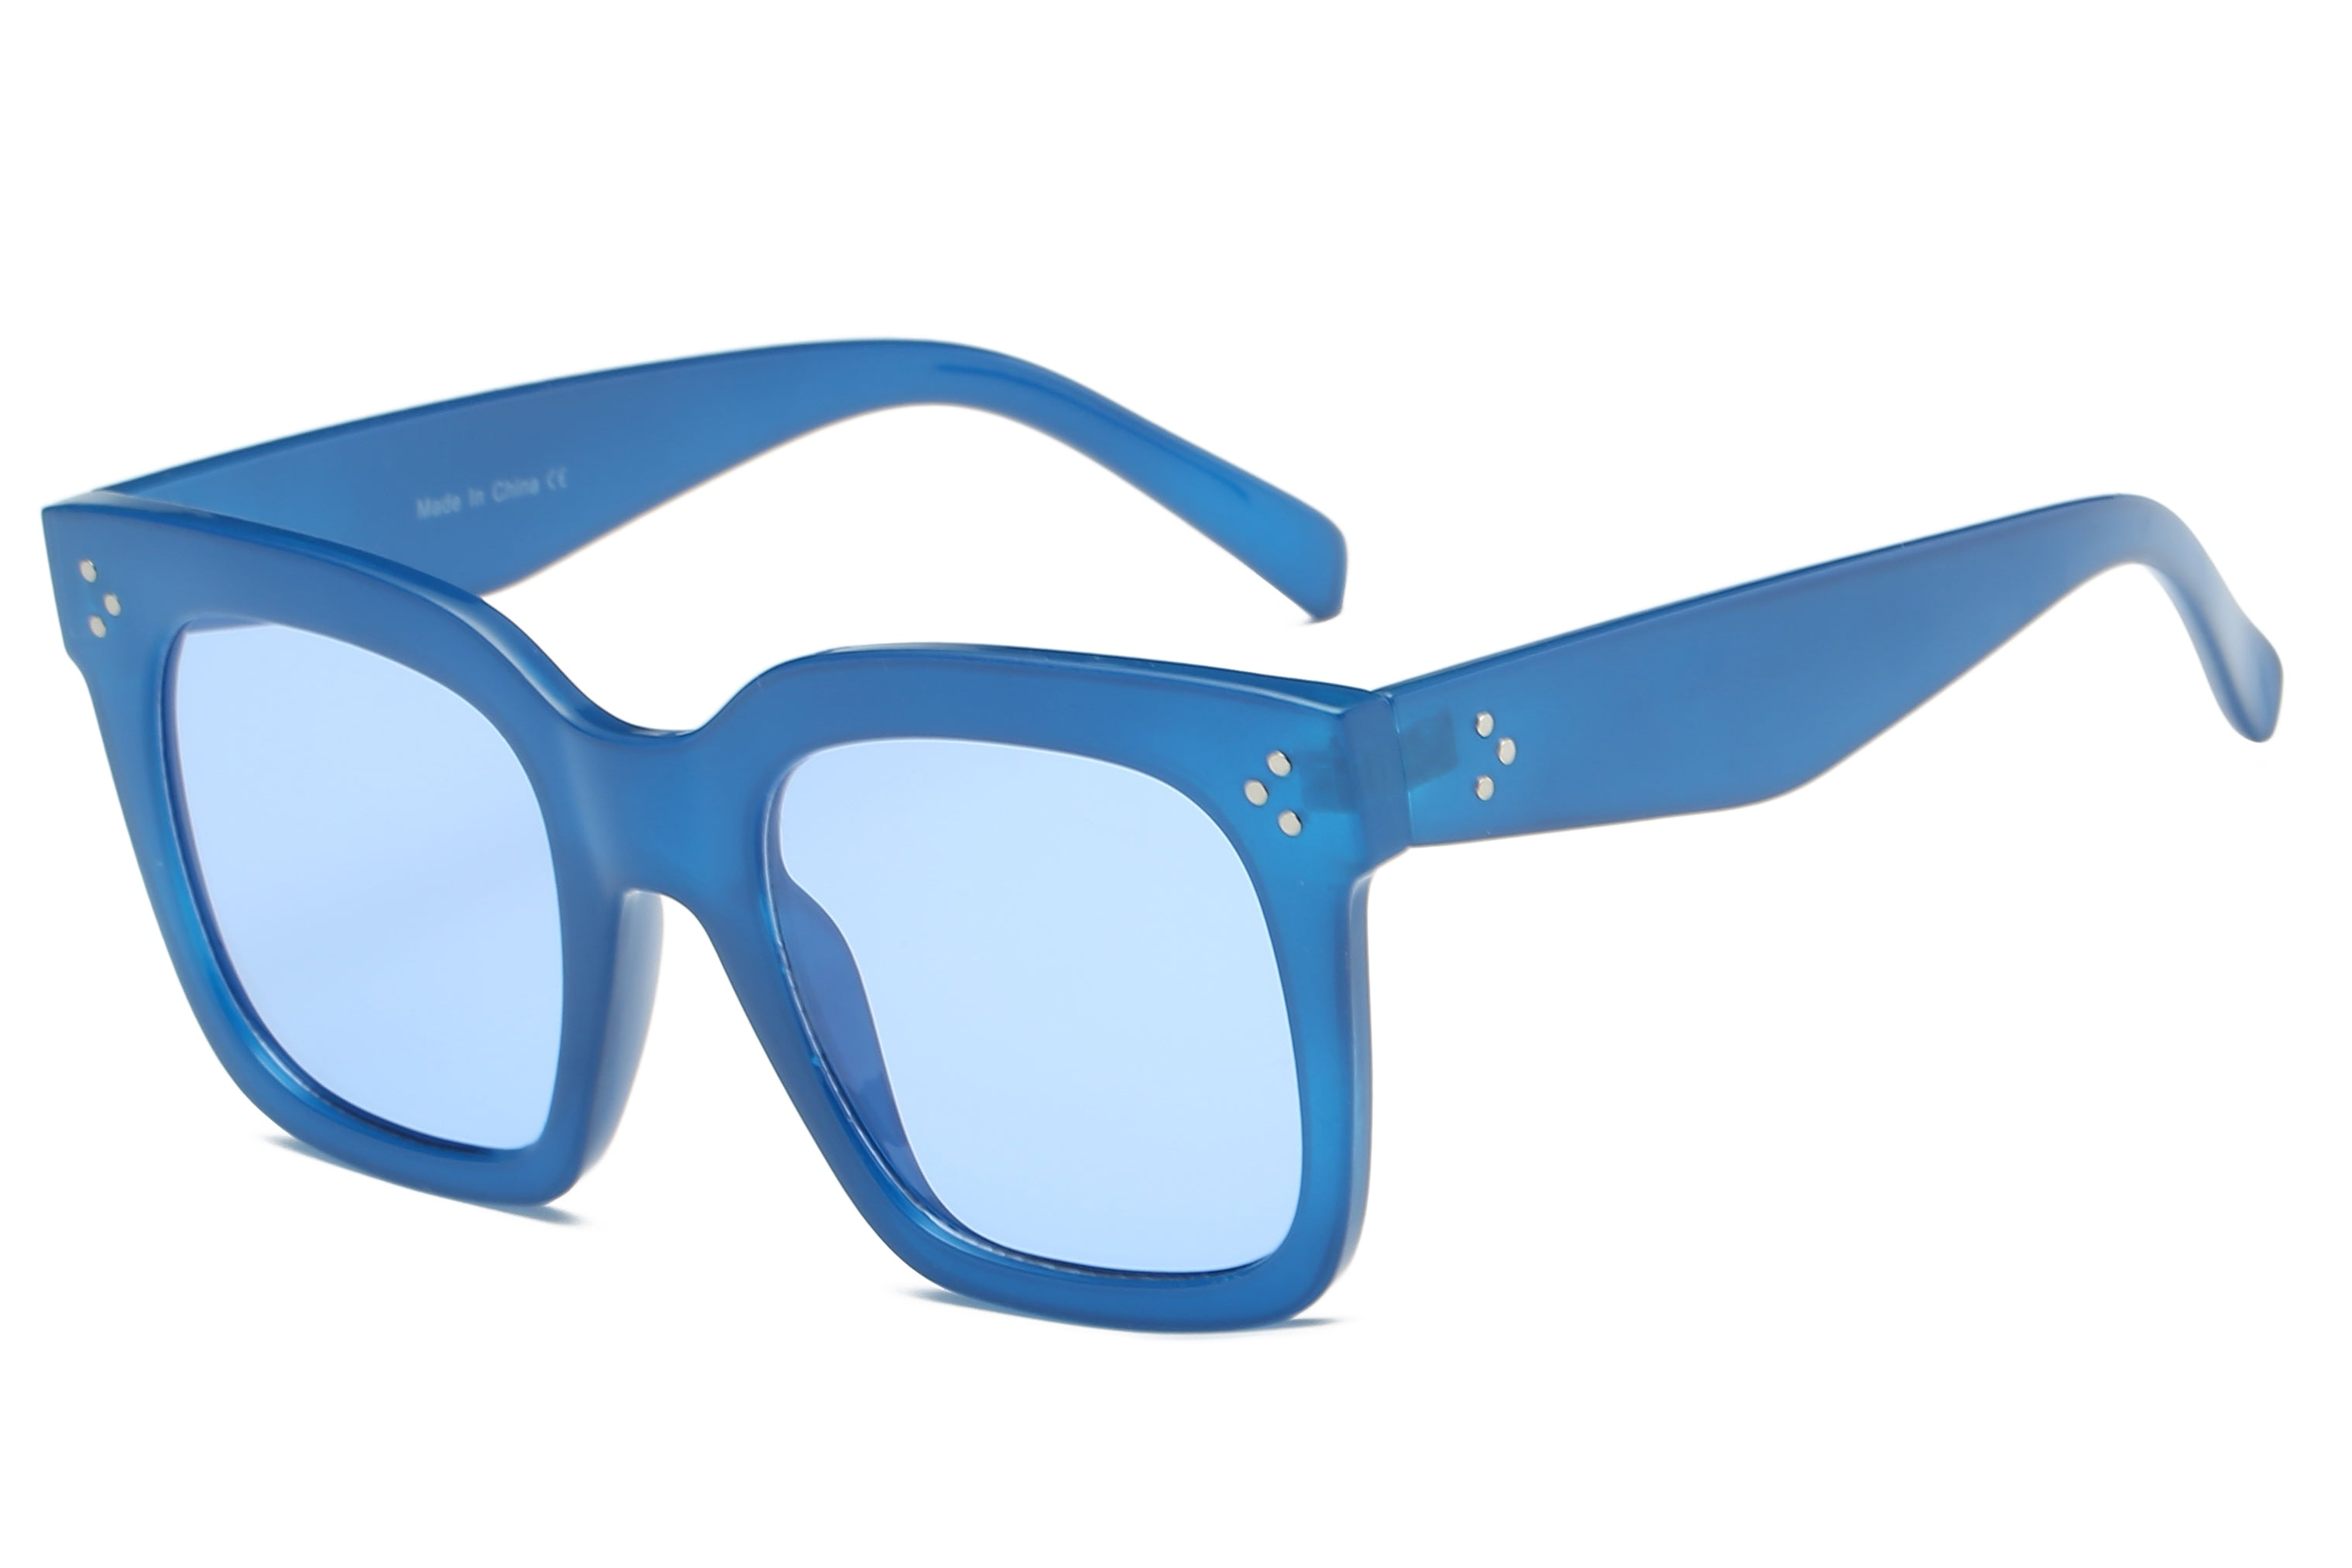 women oversize square fashion sunglasses with blue frame and blue tinted lens